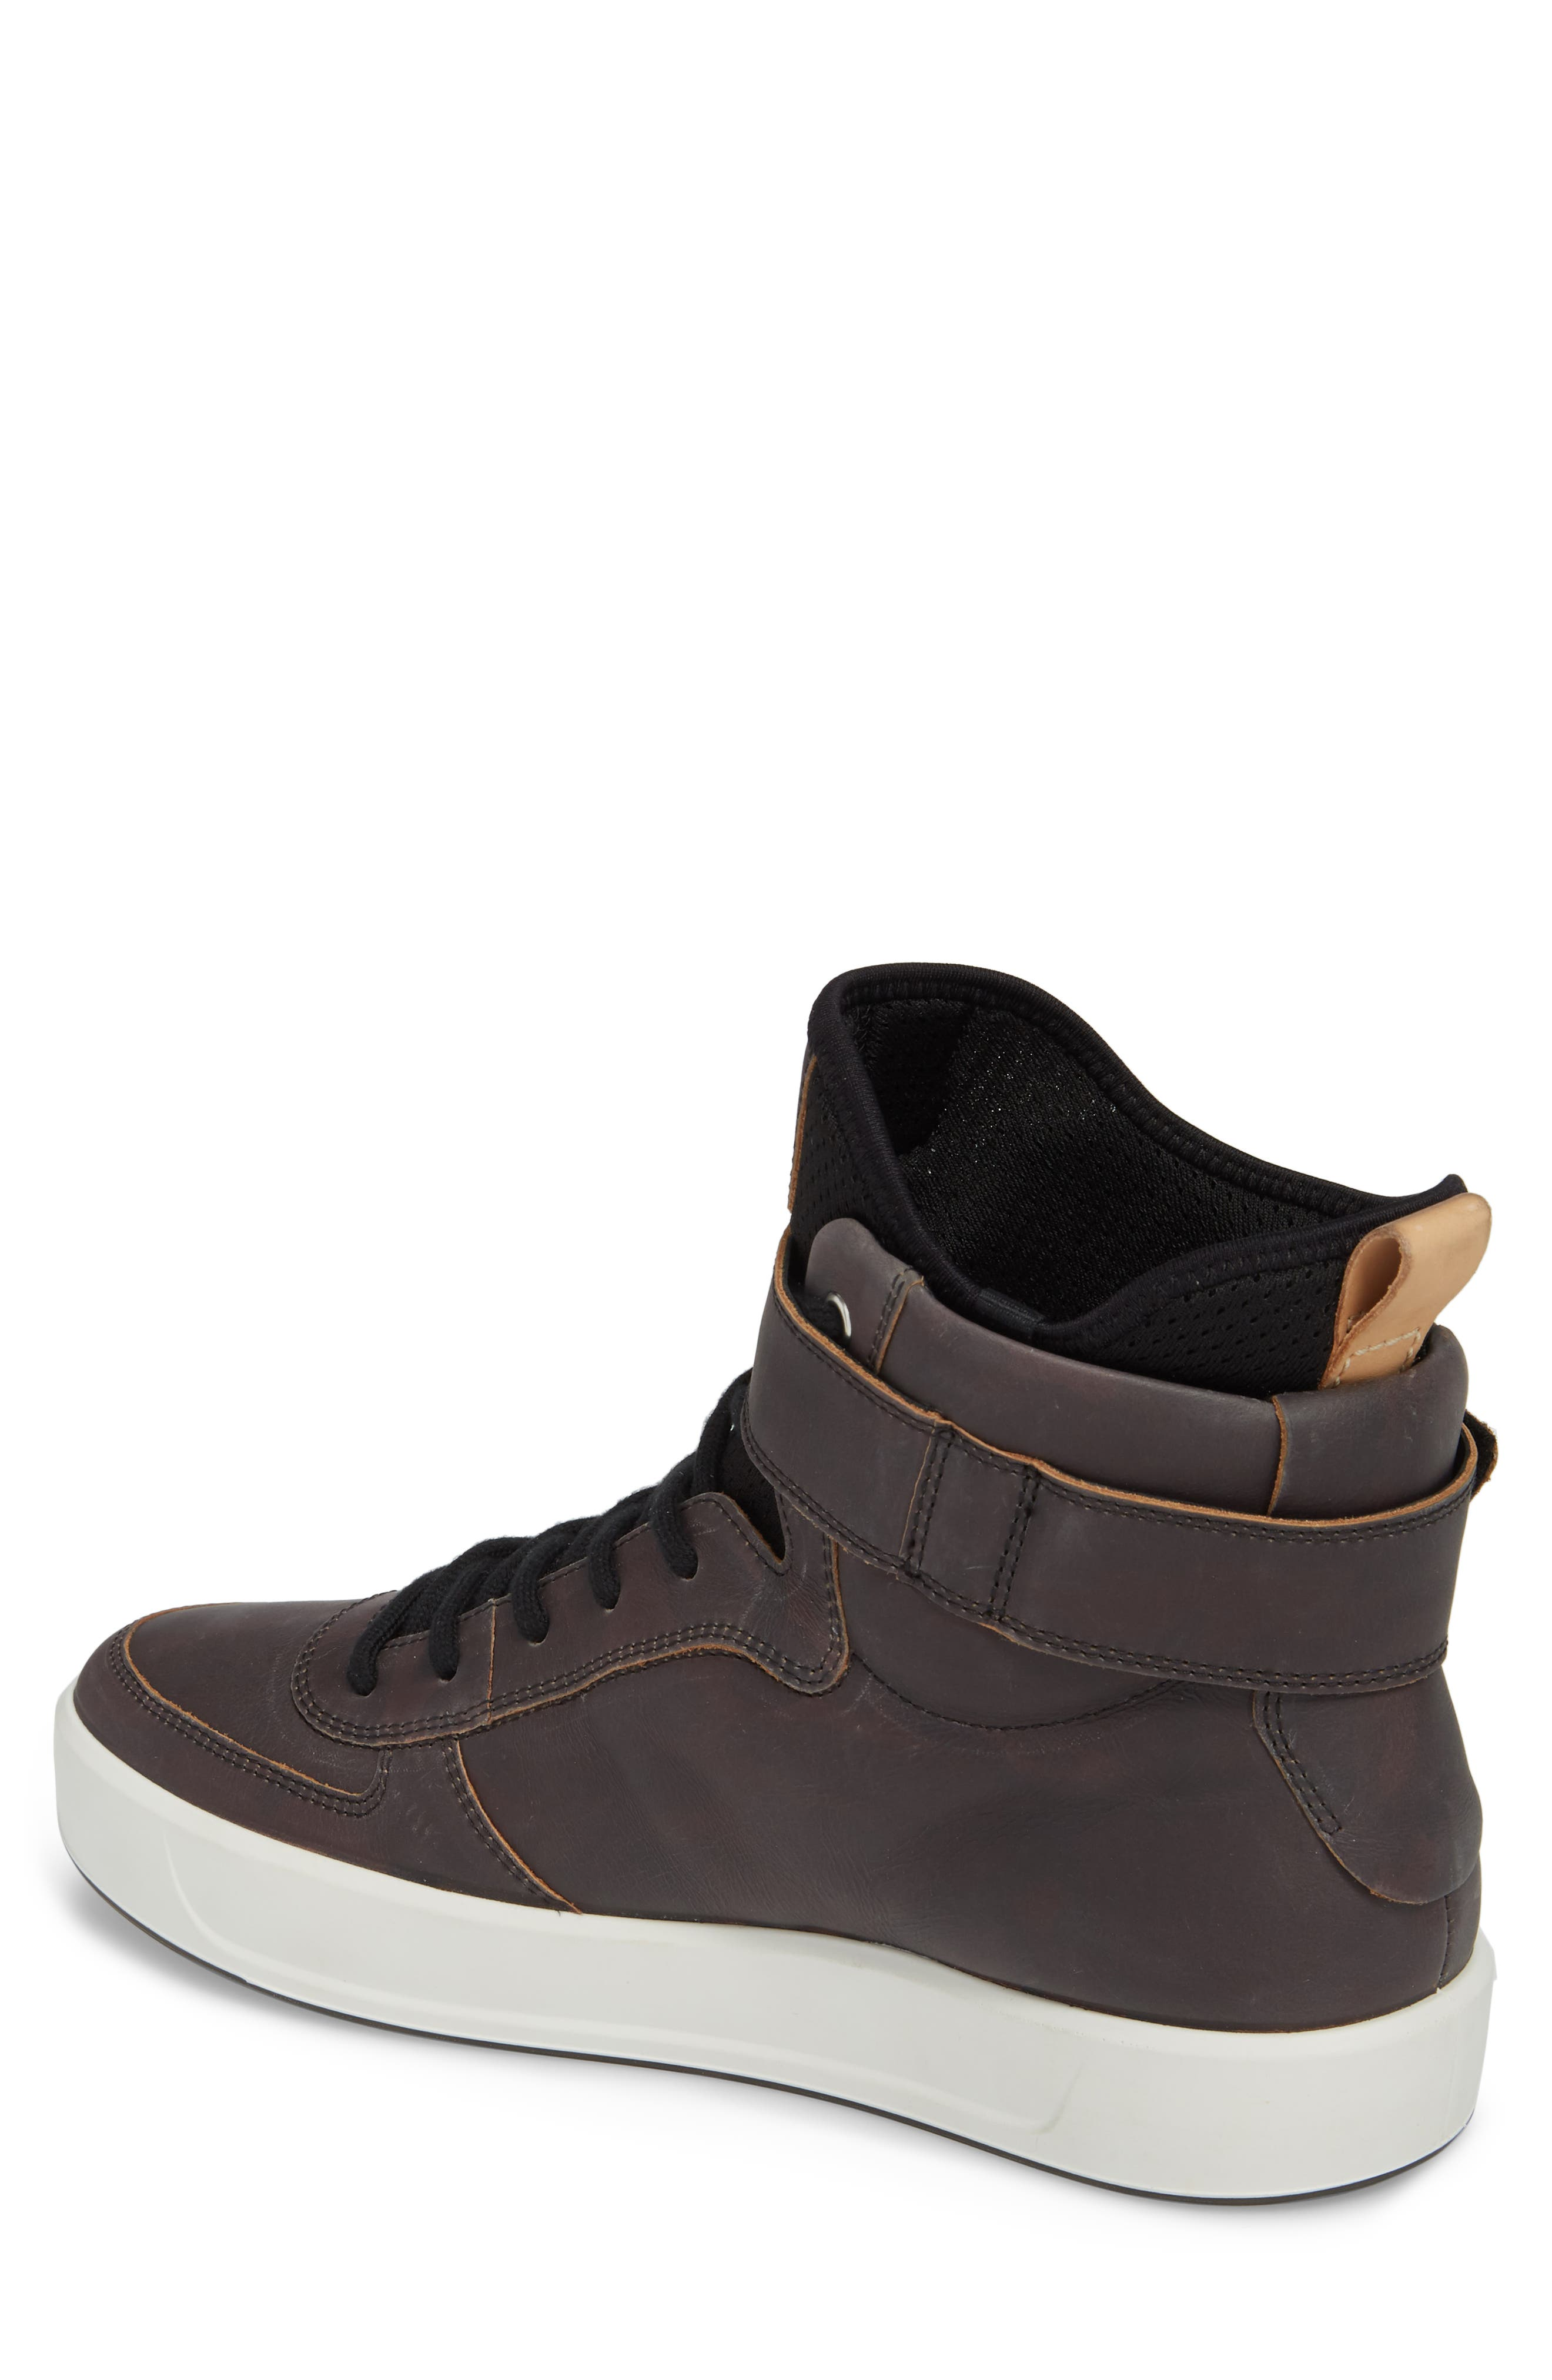 Soft 8 Color Changing Sneaker Boot,                             Alternate thumbnail 2, color,                             Black/ Camouflage Leather